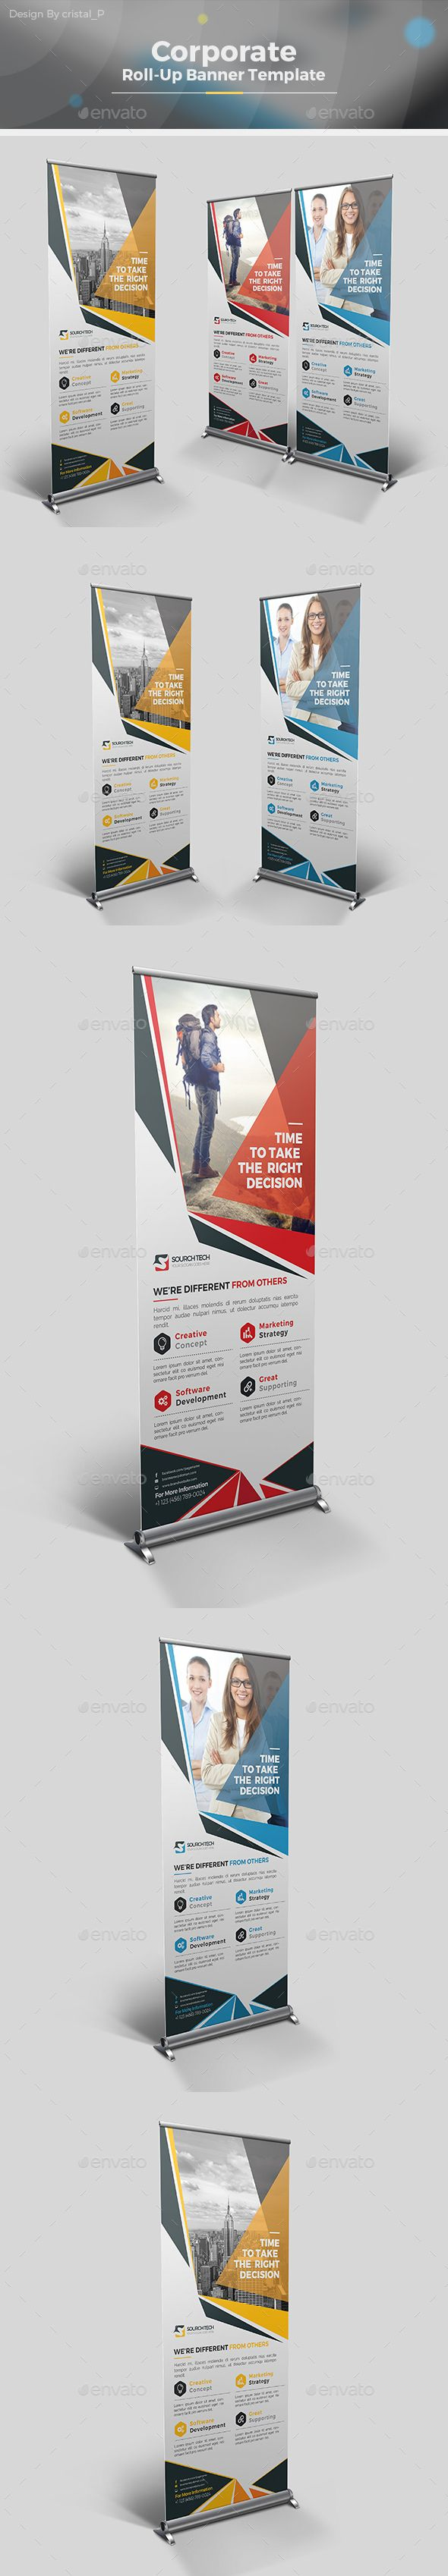 Business Roll Up Banner by CRISTAL_P Corporate Roll-up Banner Template Designis very easy to use andchange text,color,size,look and everything so please don't worry ab